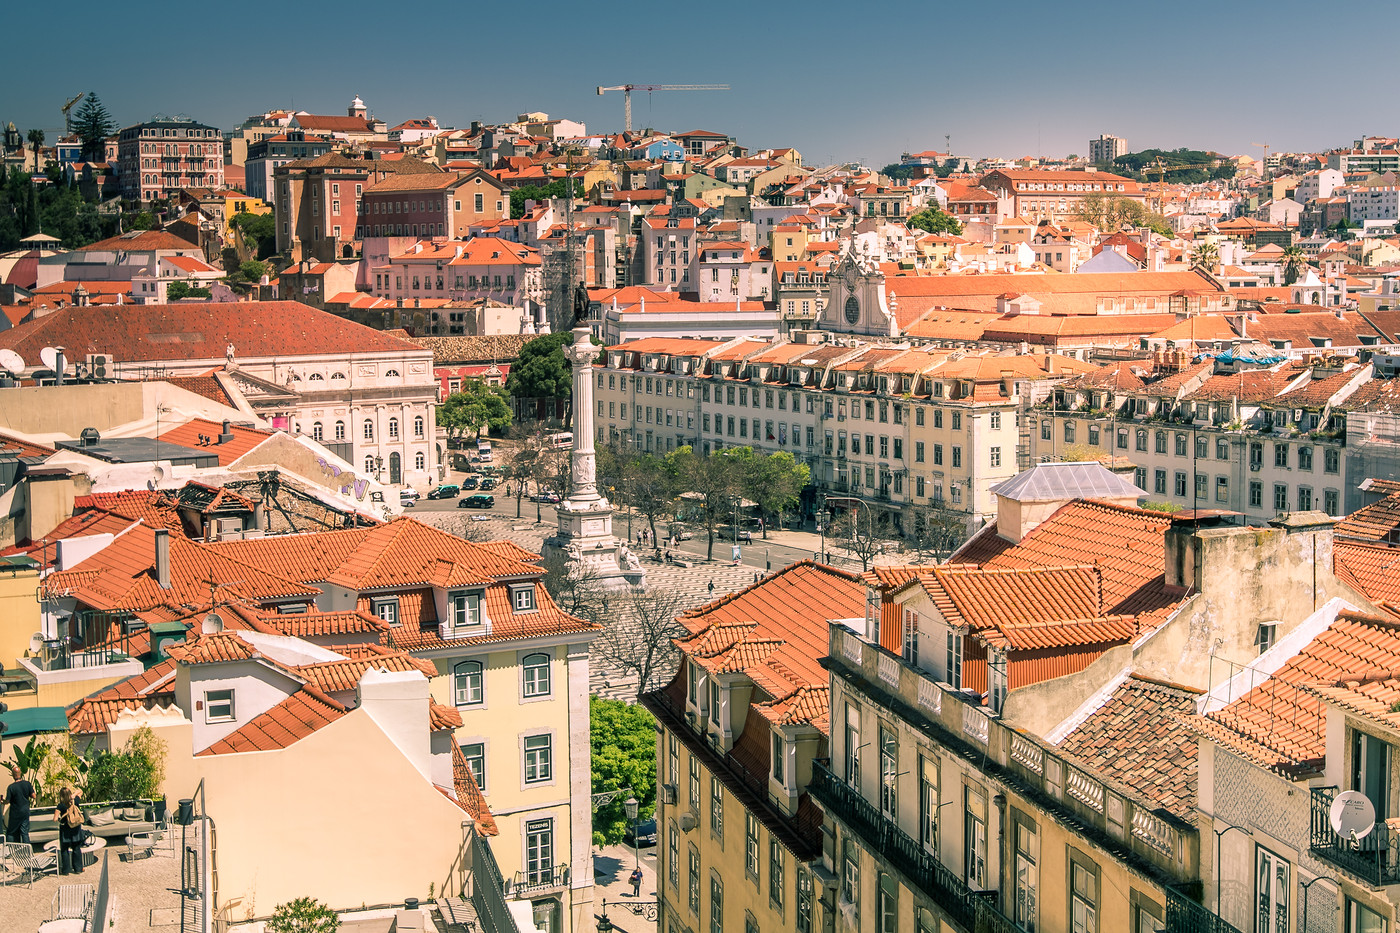 Roofs in Lisbon